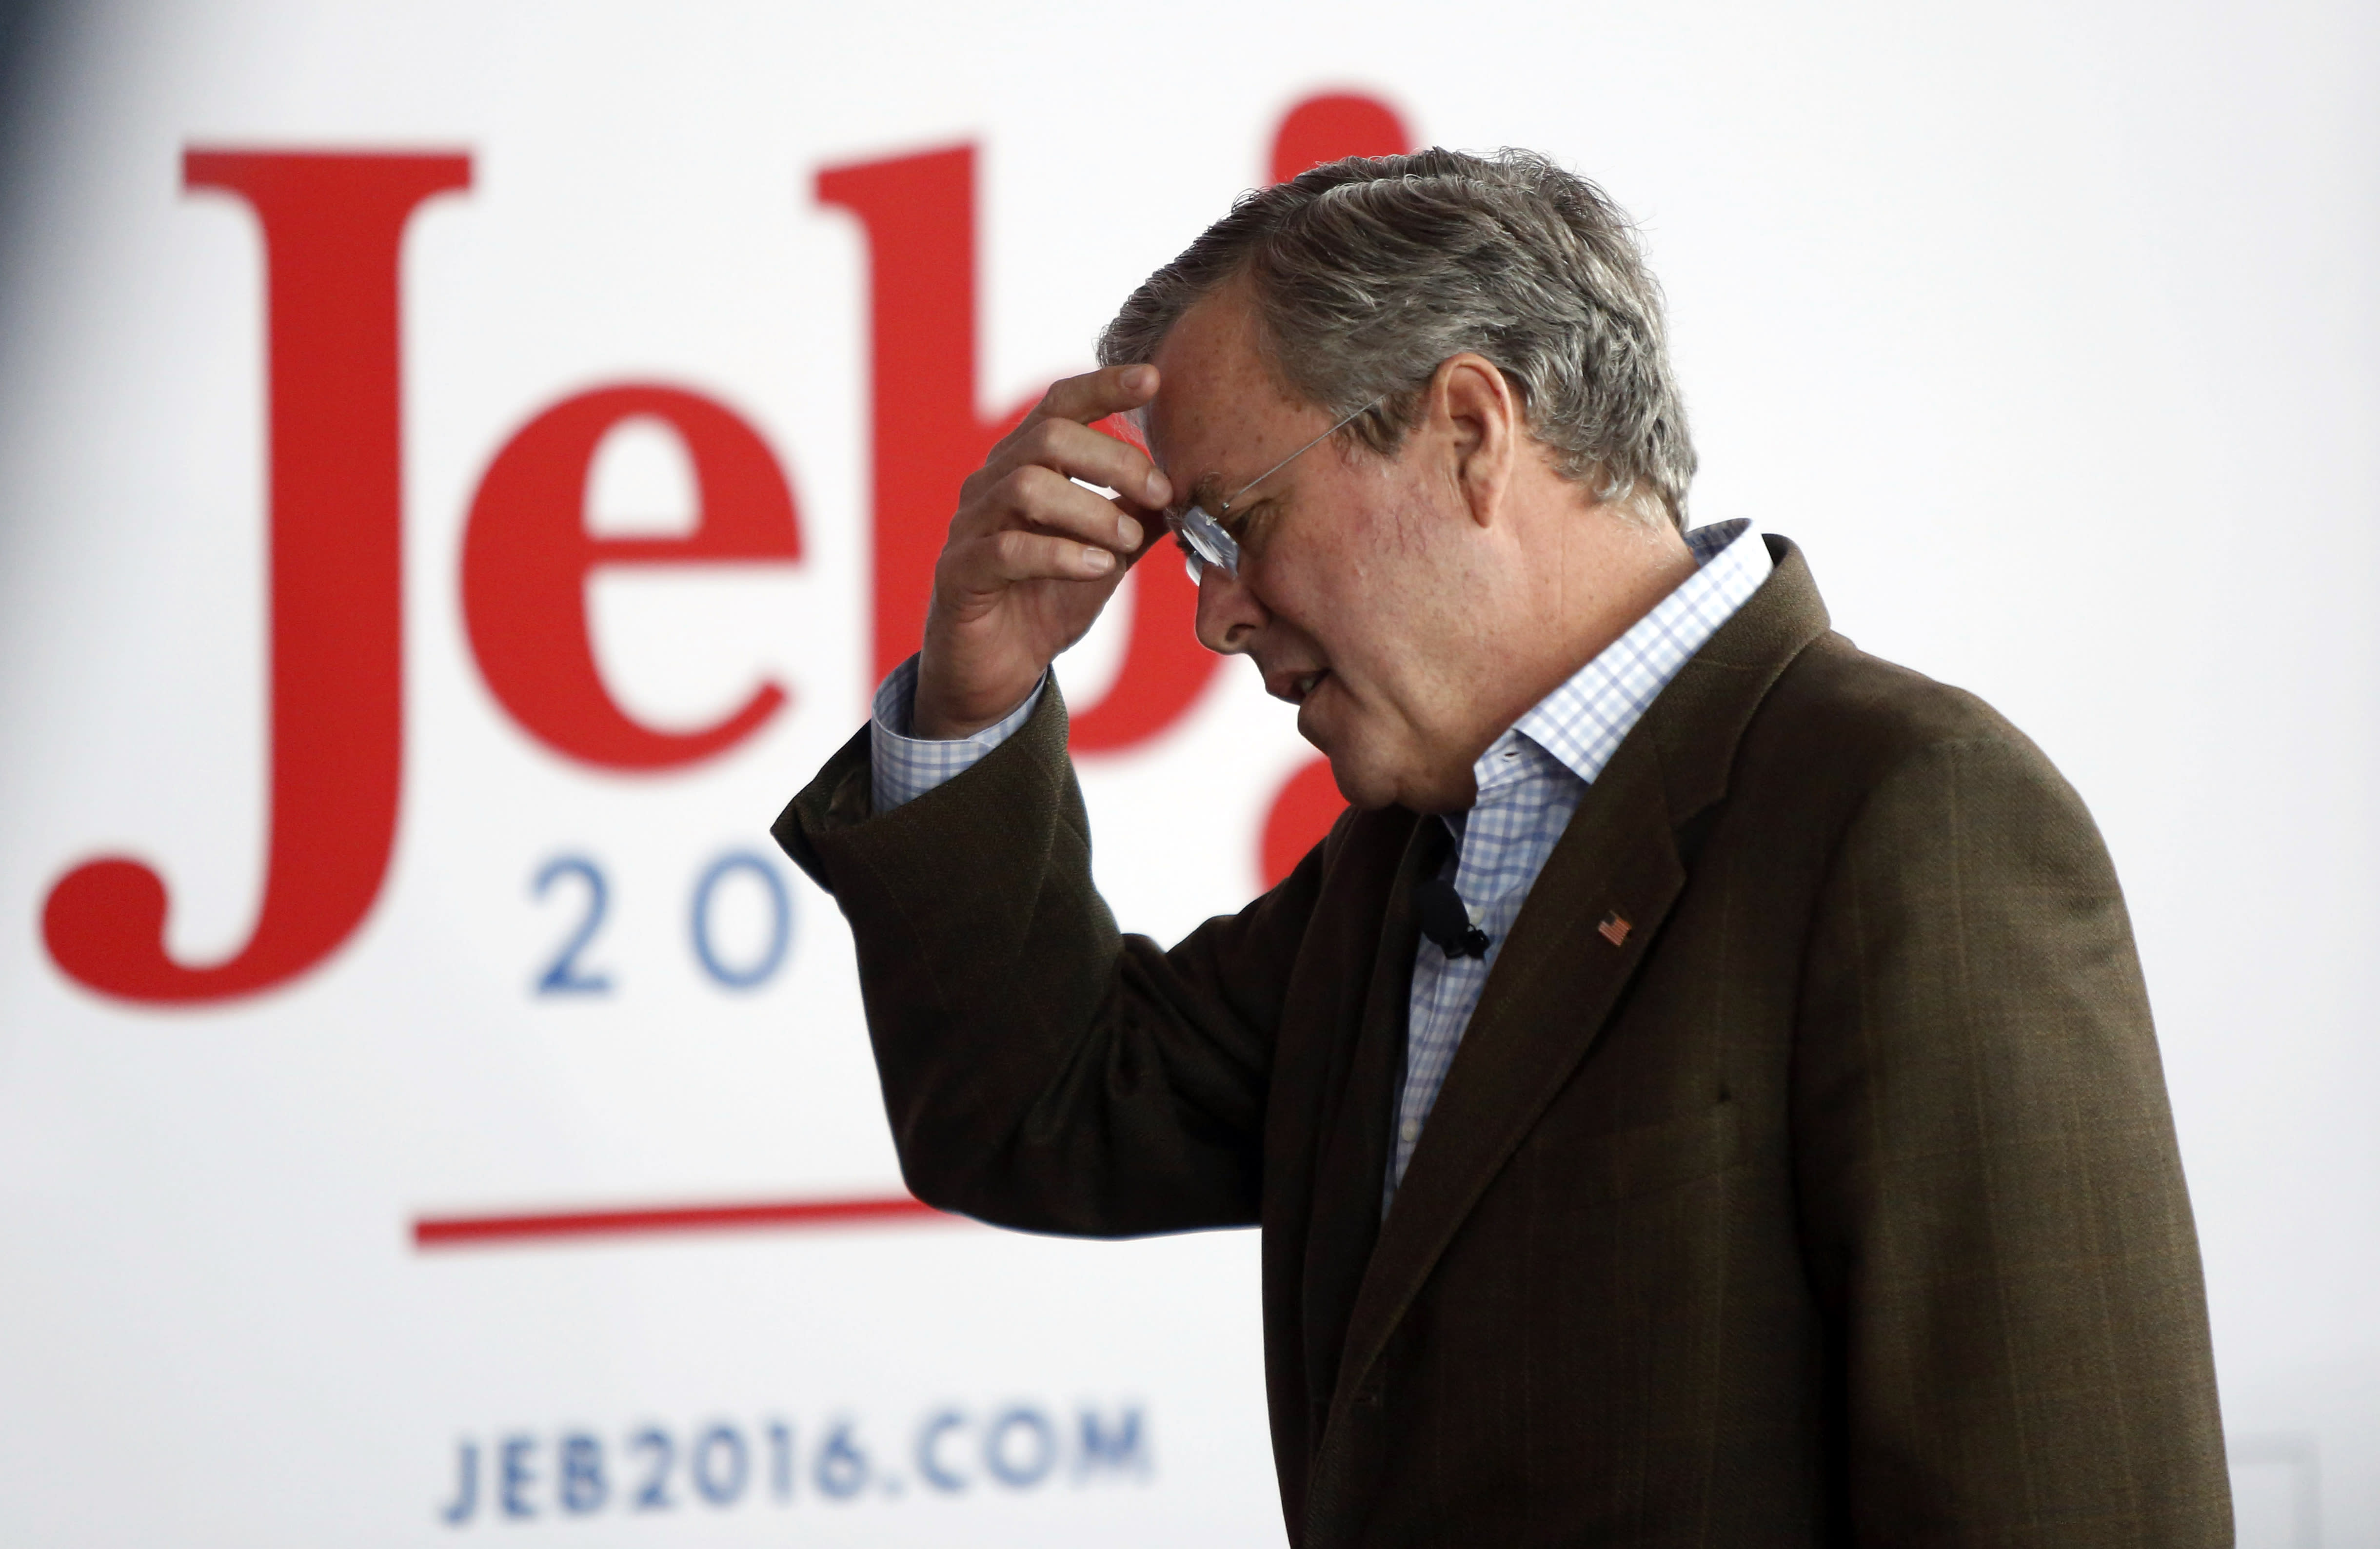 Bush spends millions on TV but has yet to rise in GOP race